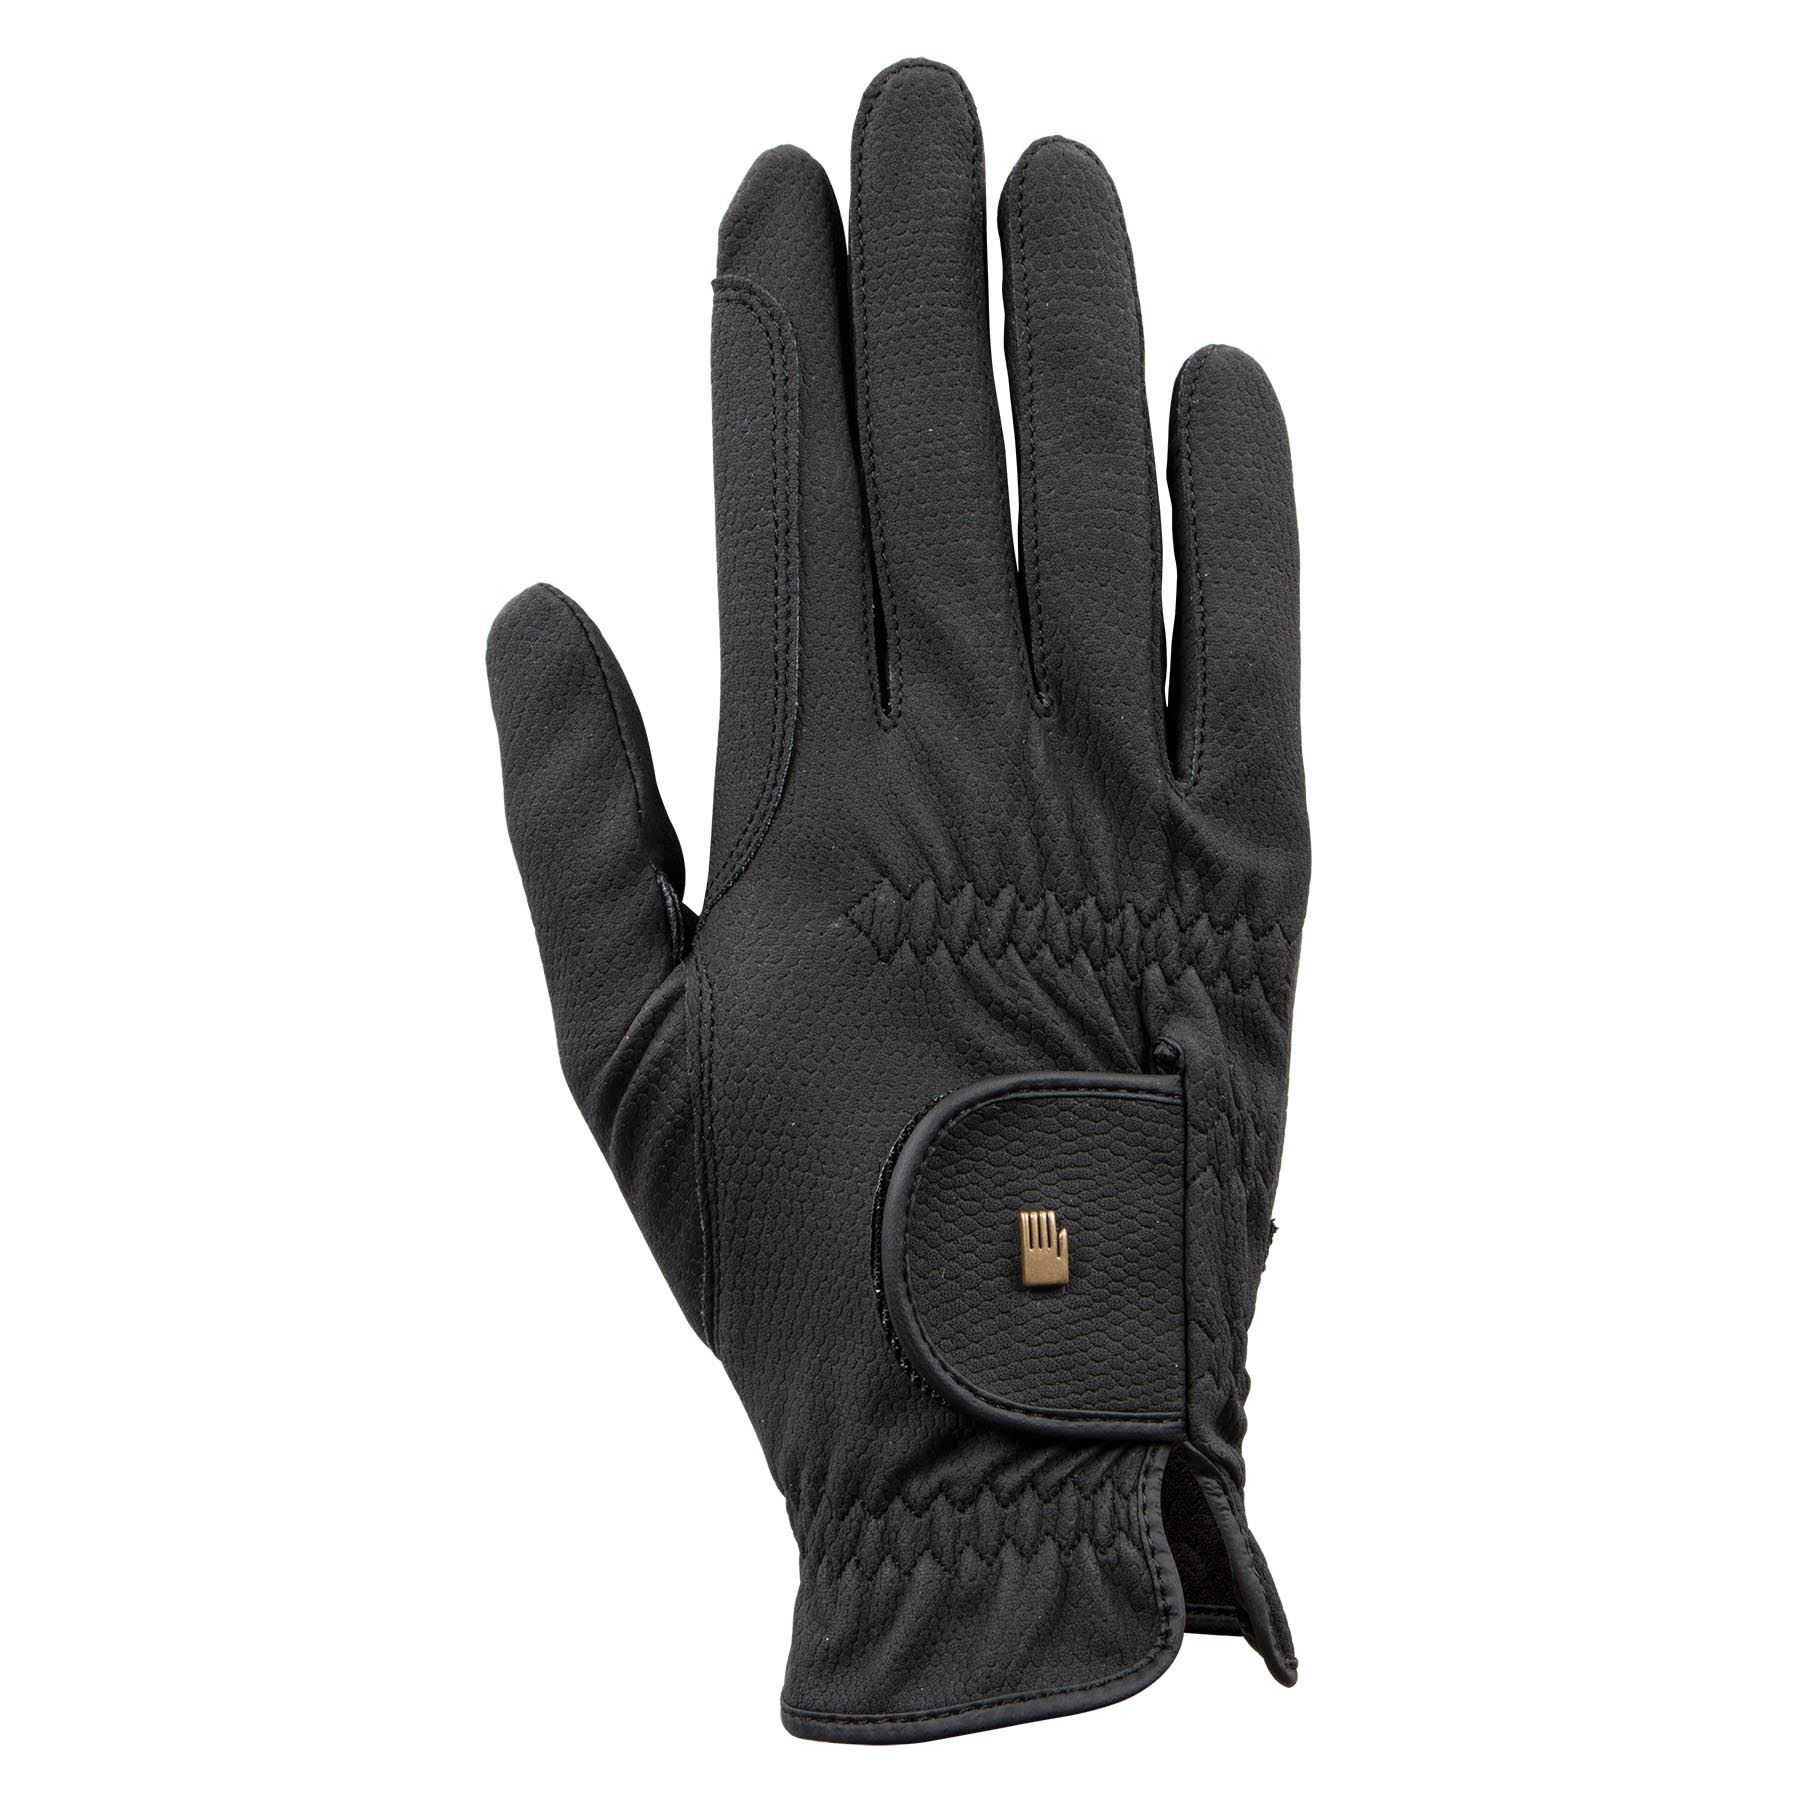 Roeckl Chester Glove In English Gloves Amp Belts At